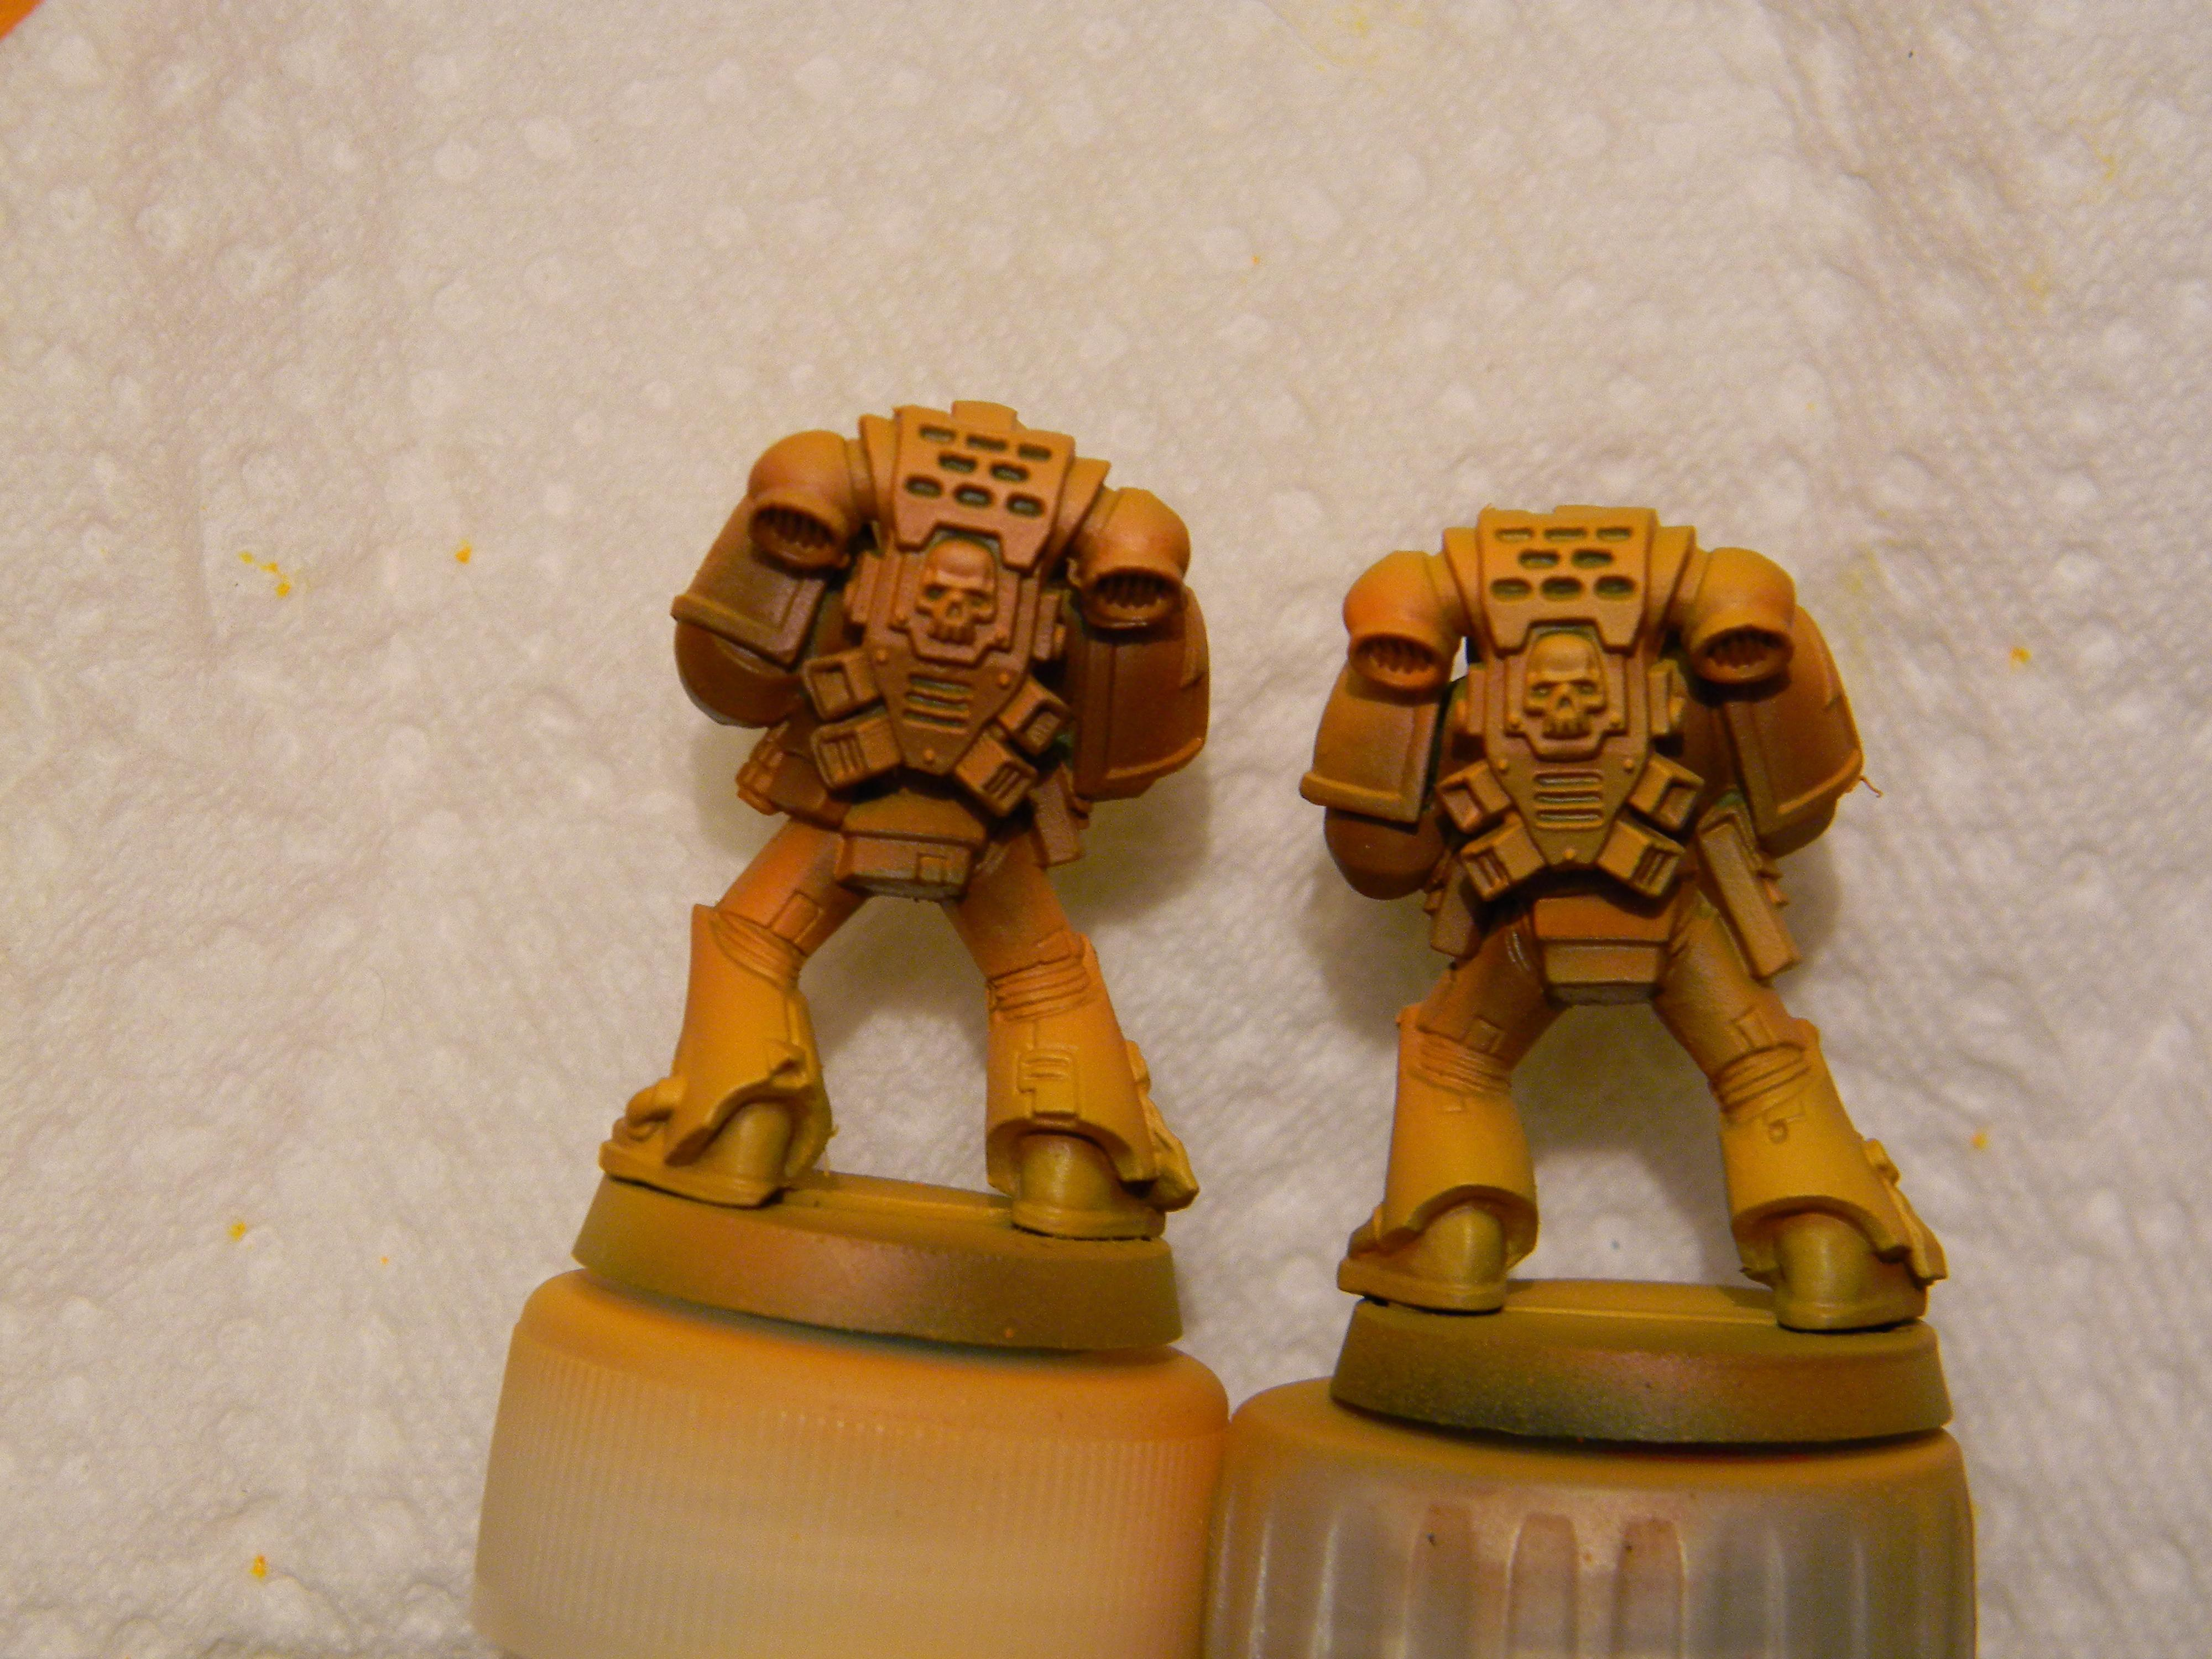 First run (unhighlighted) on left, highlighted on the right